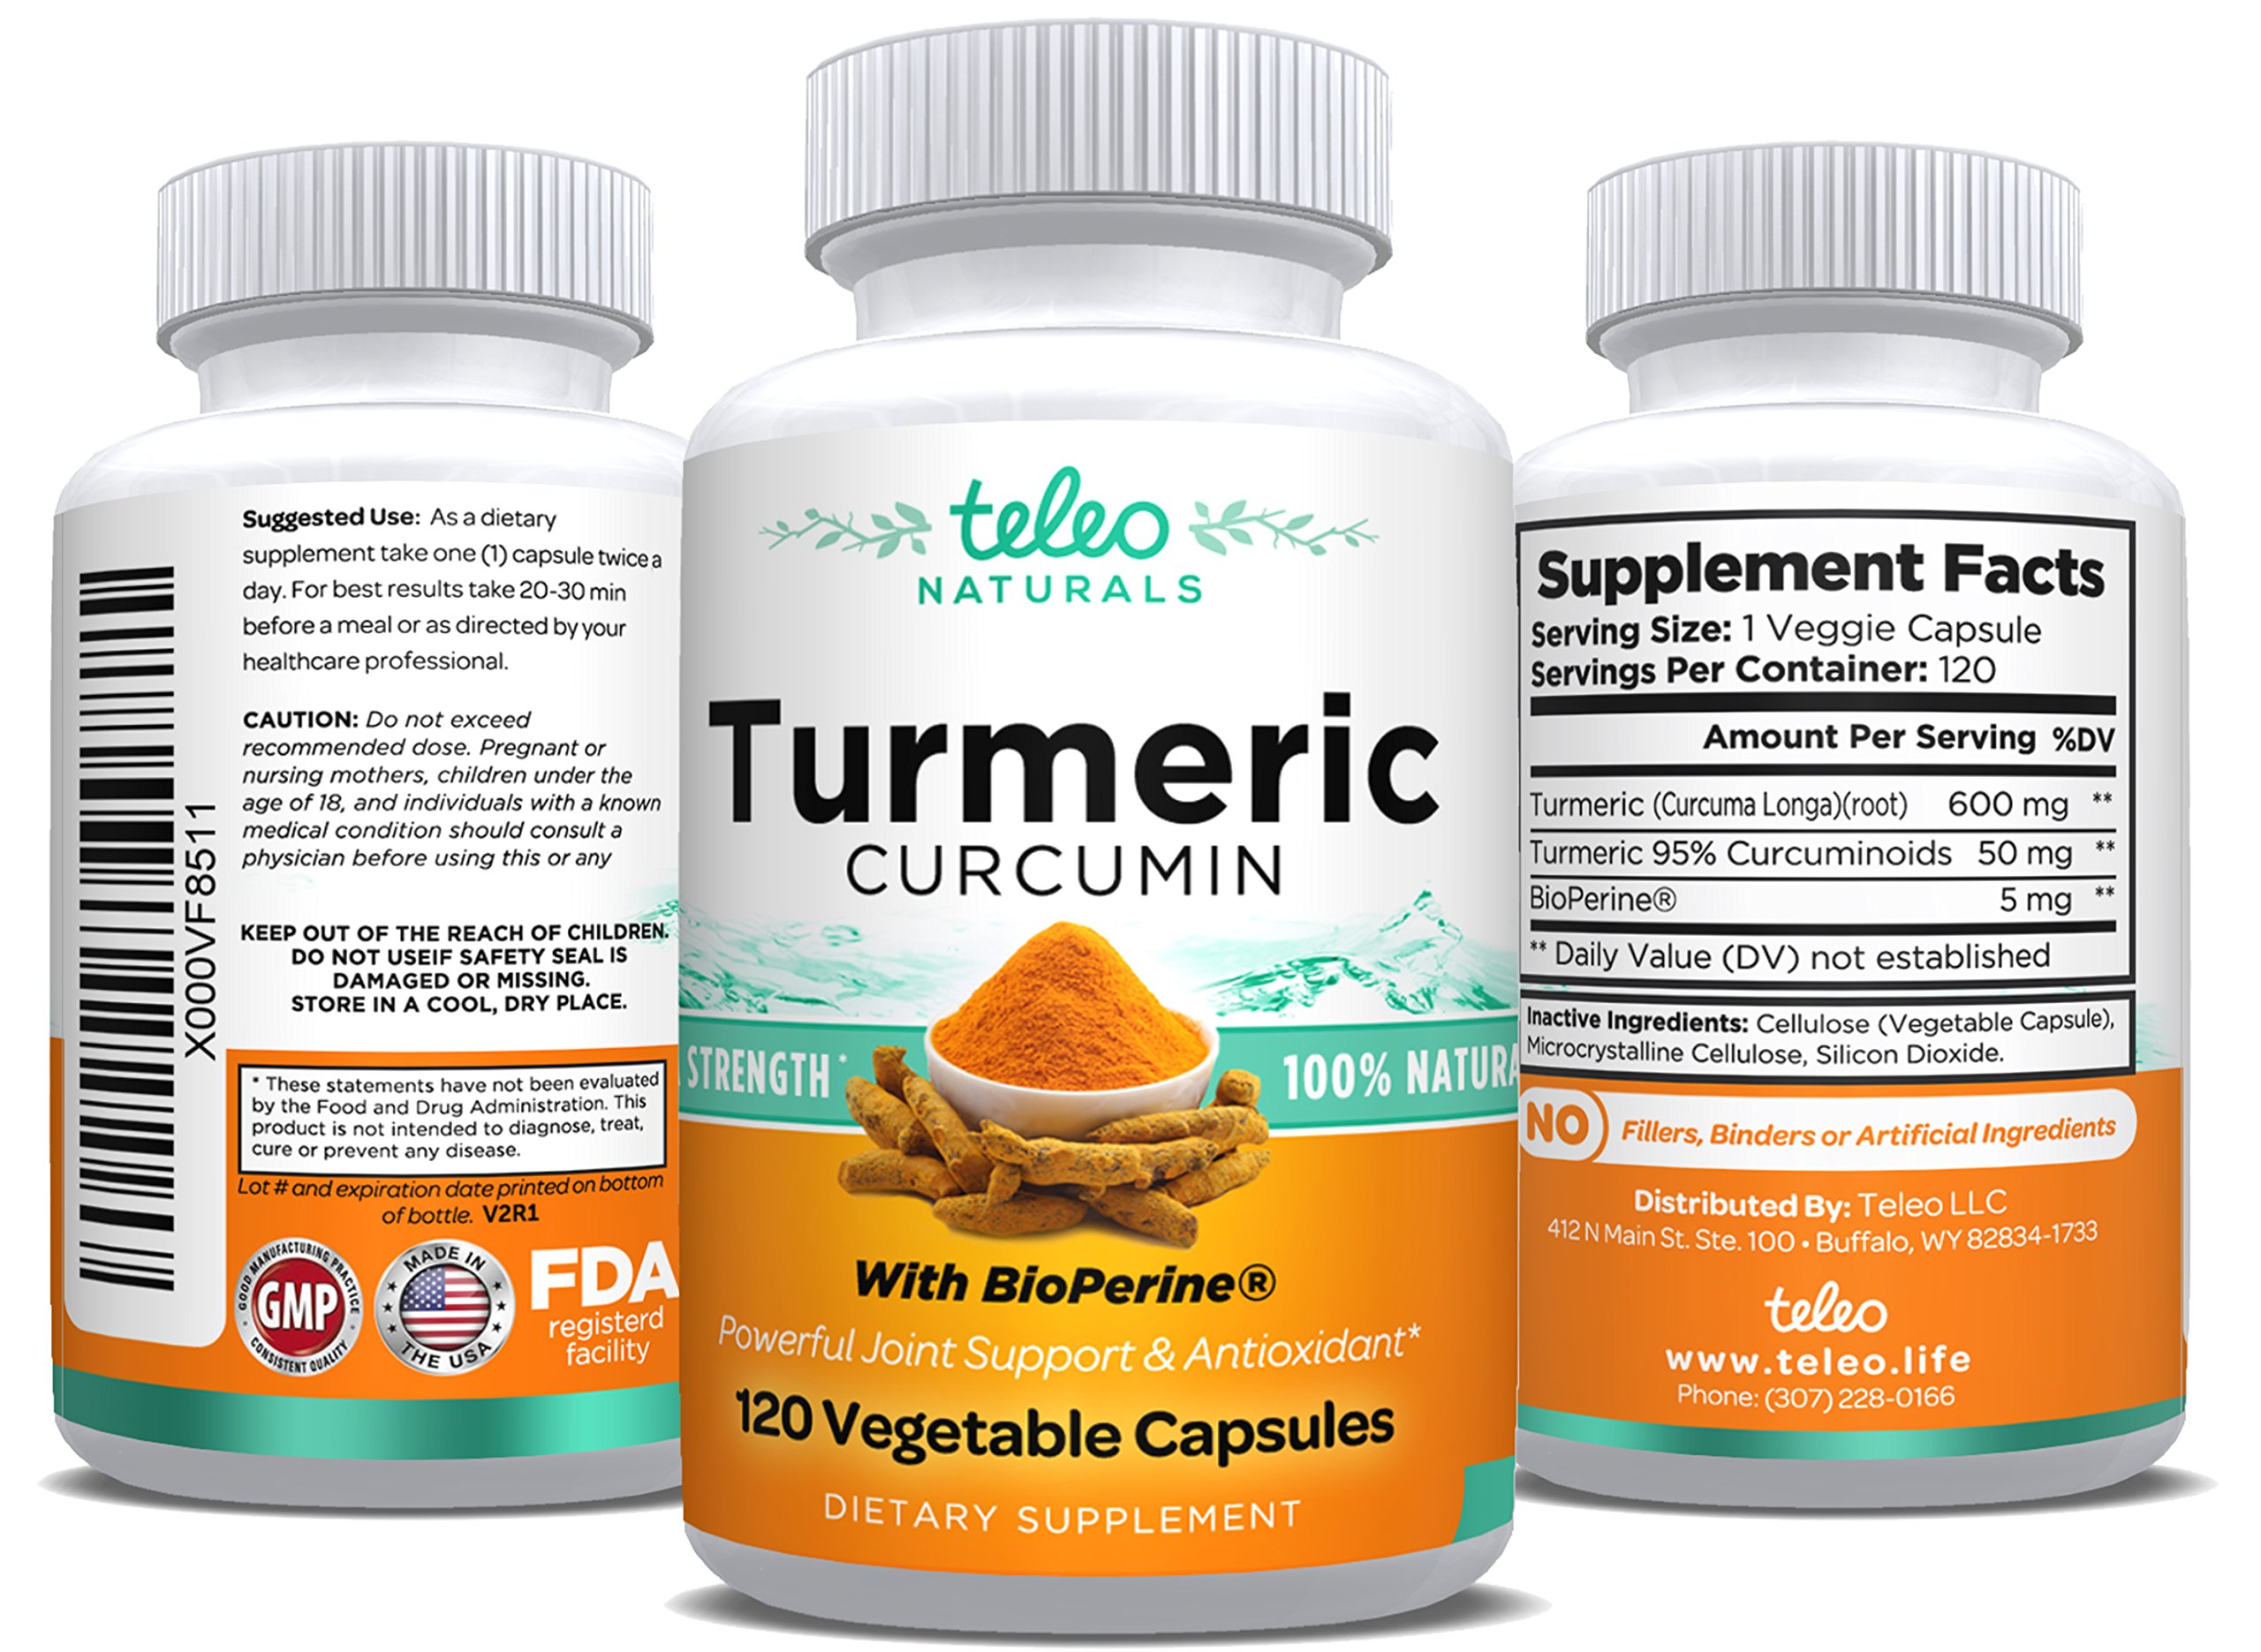 100% Pure Extra Strength All Natural Turmeric Curcumin with BioPerine Pain Relief & Joint Support No Fillers High Absorption Premium 2 Month Supply Turmeric Capsules with Black Pepper